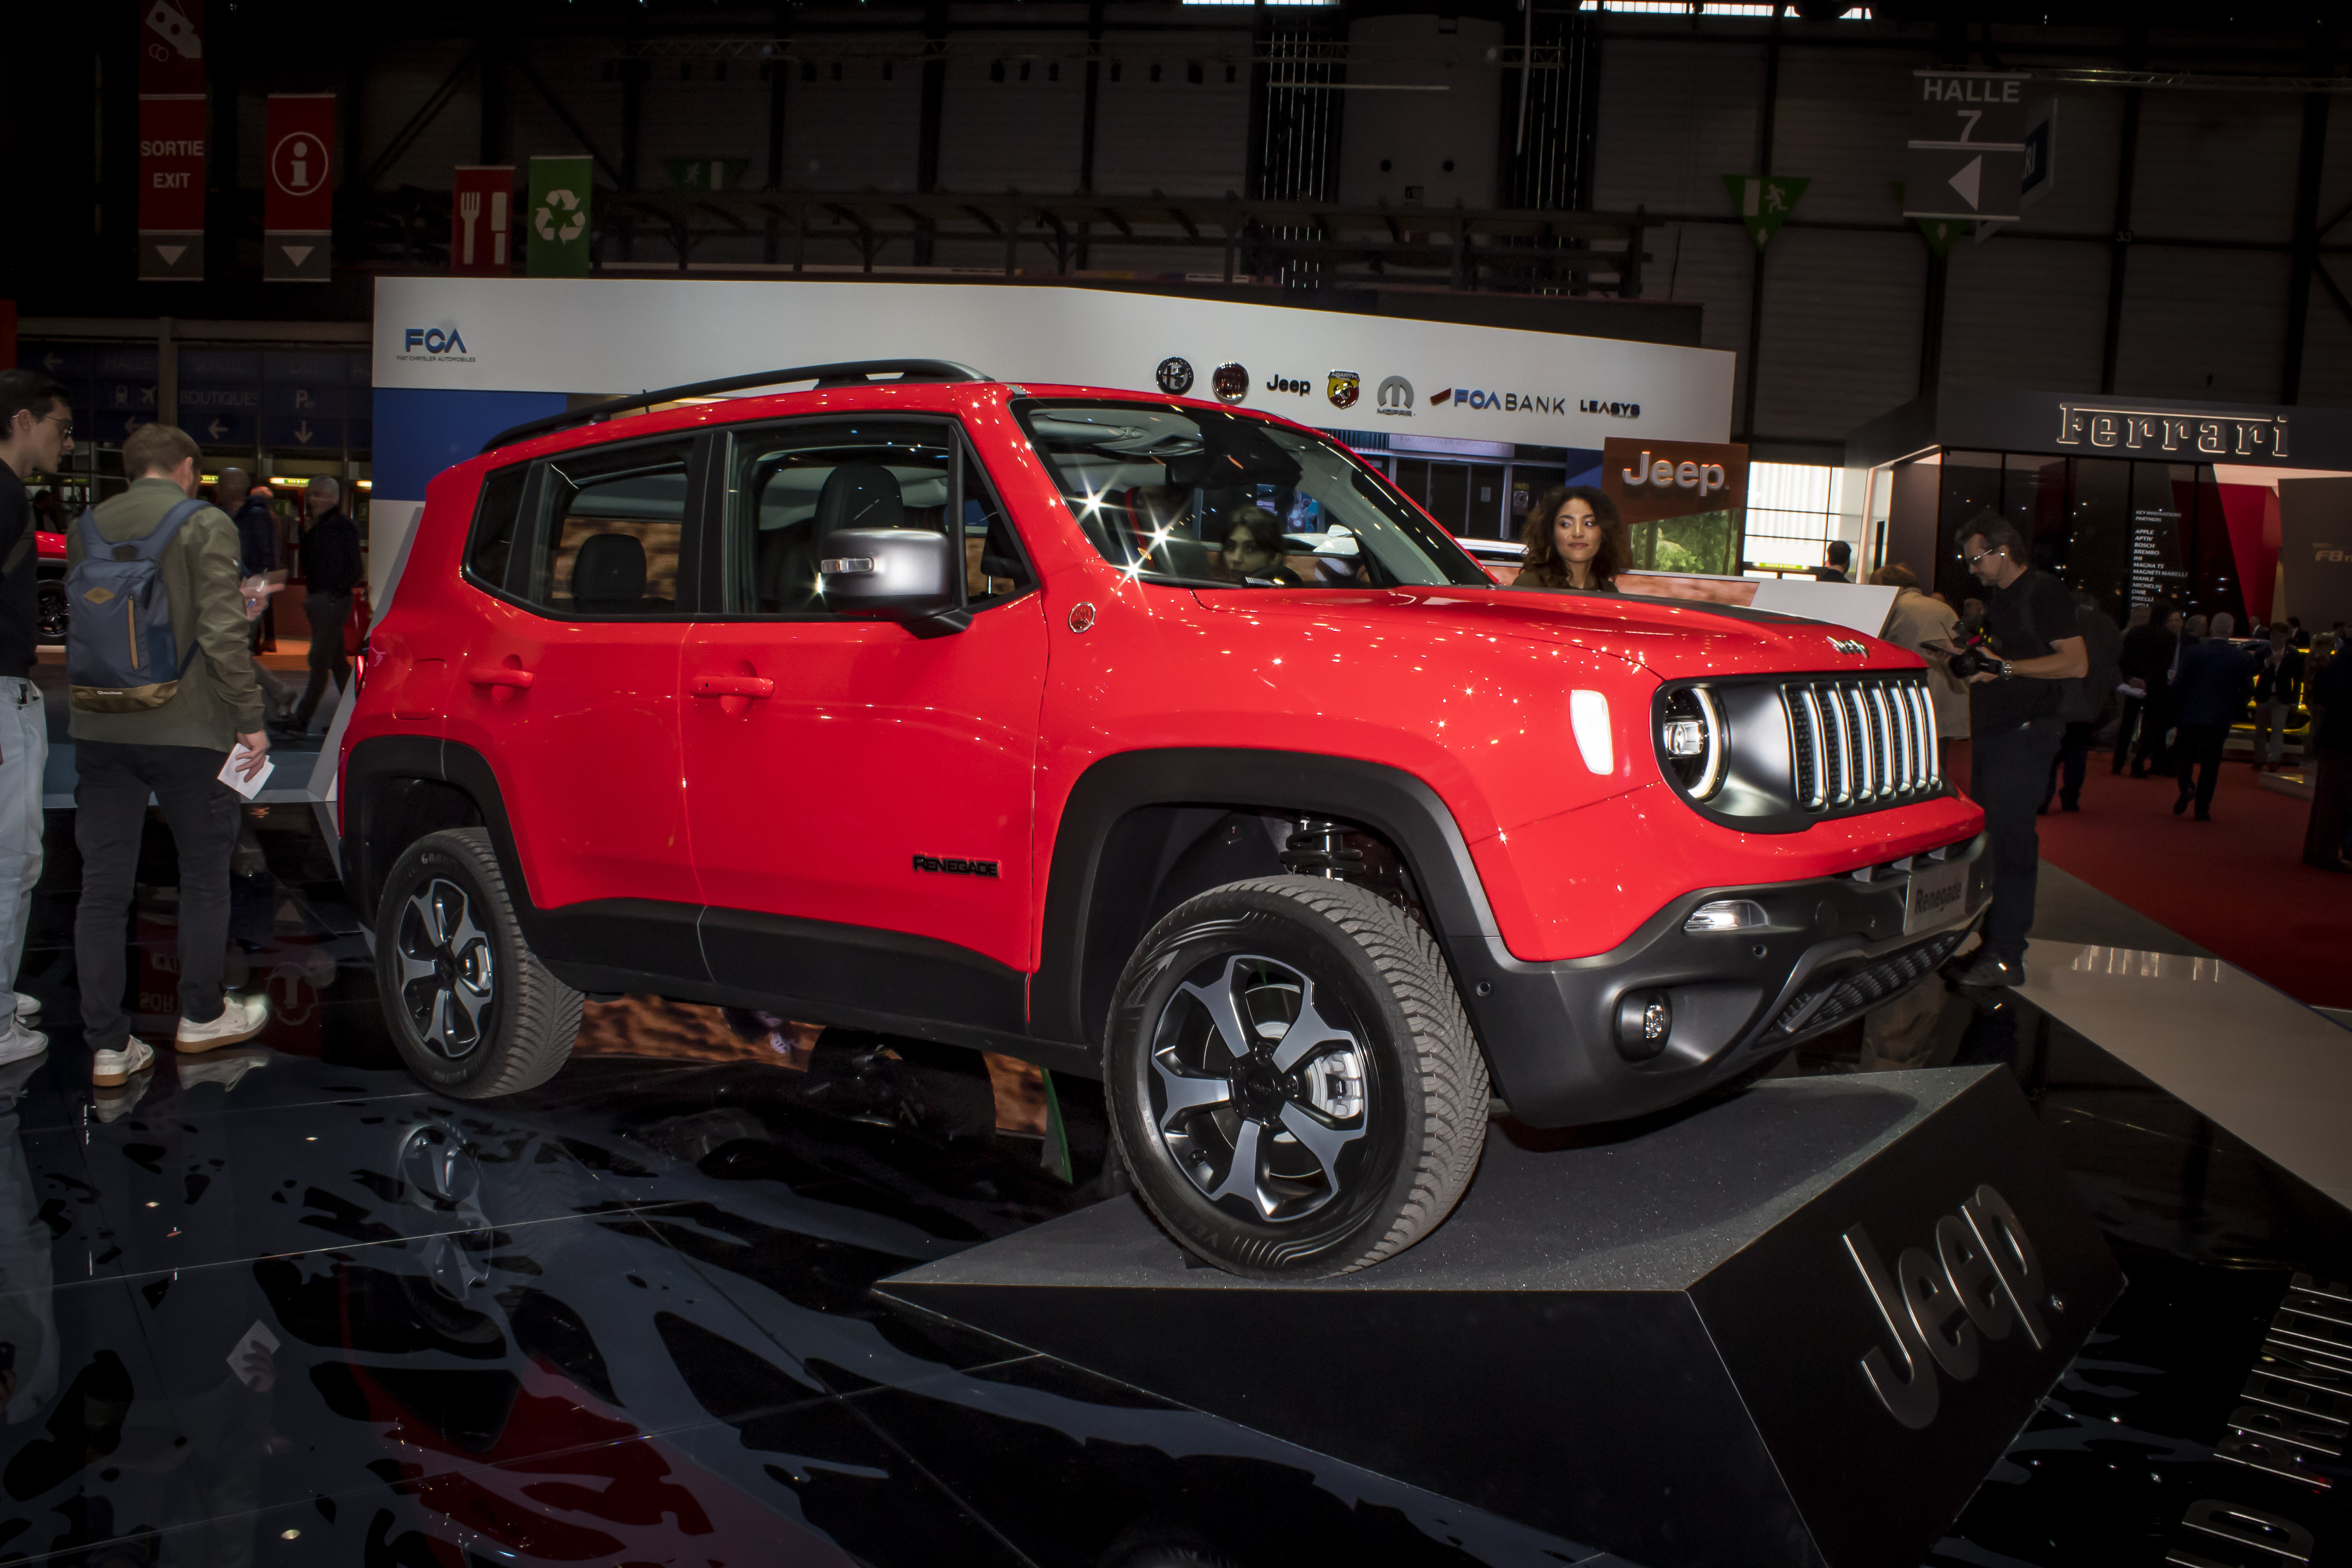 2019 jeep renegade hybrid pictures photos wallpapers